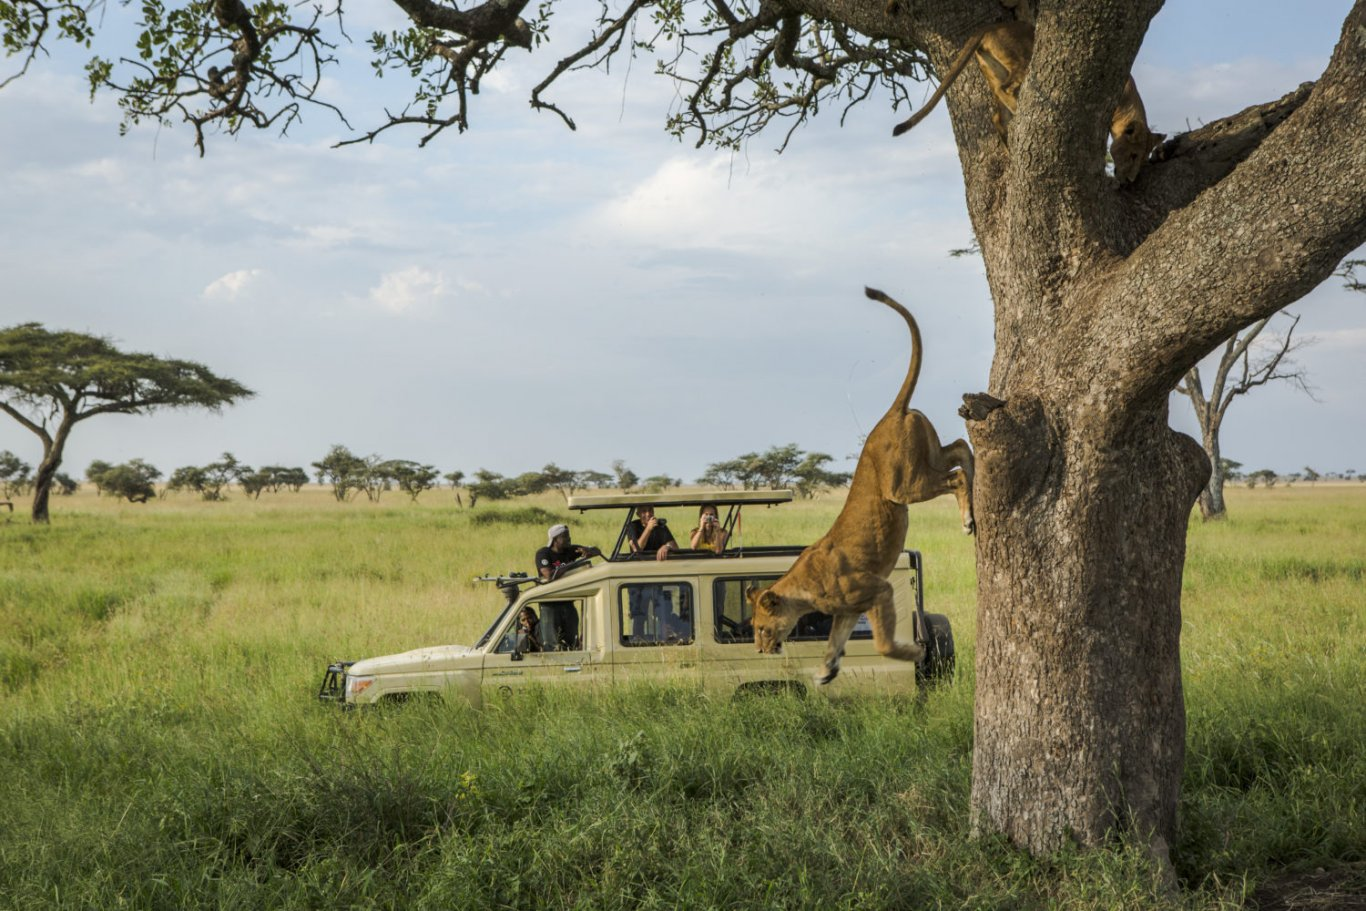 8 DAY TANZANIA BUDGET SAFARI AND CULTURAL TOURISM